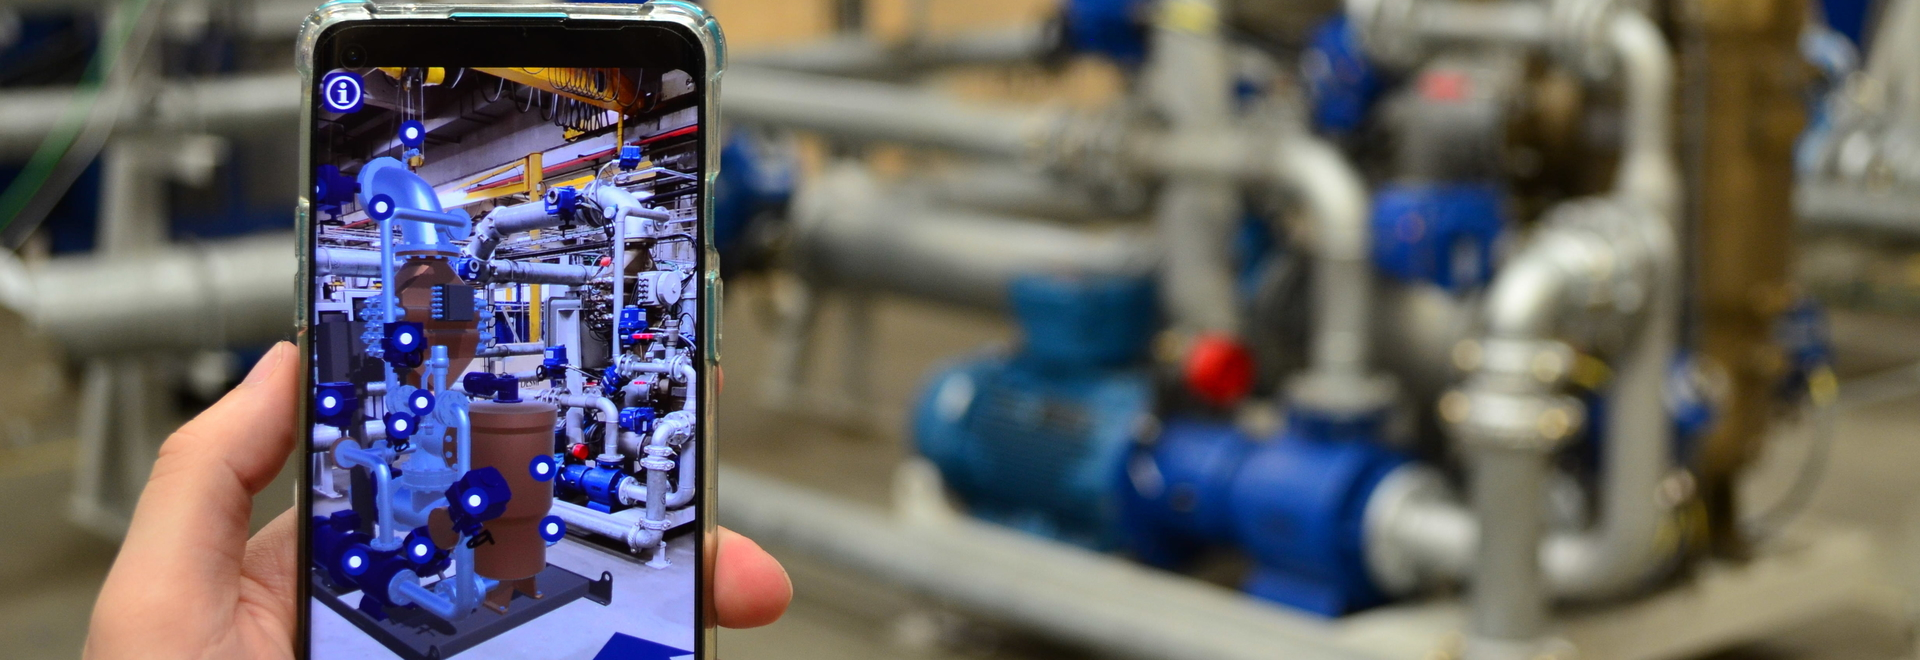 Digital offline tools offer e-learning for DESMI's CompactClean ballast water management system